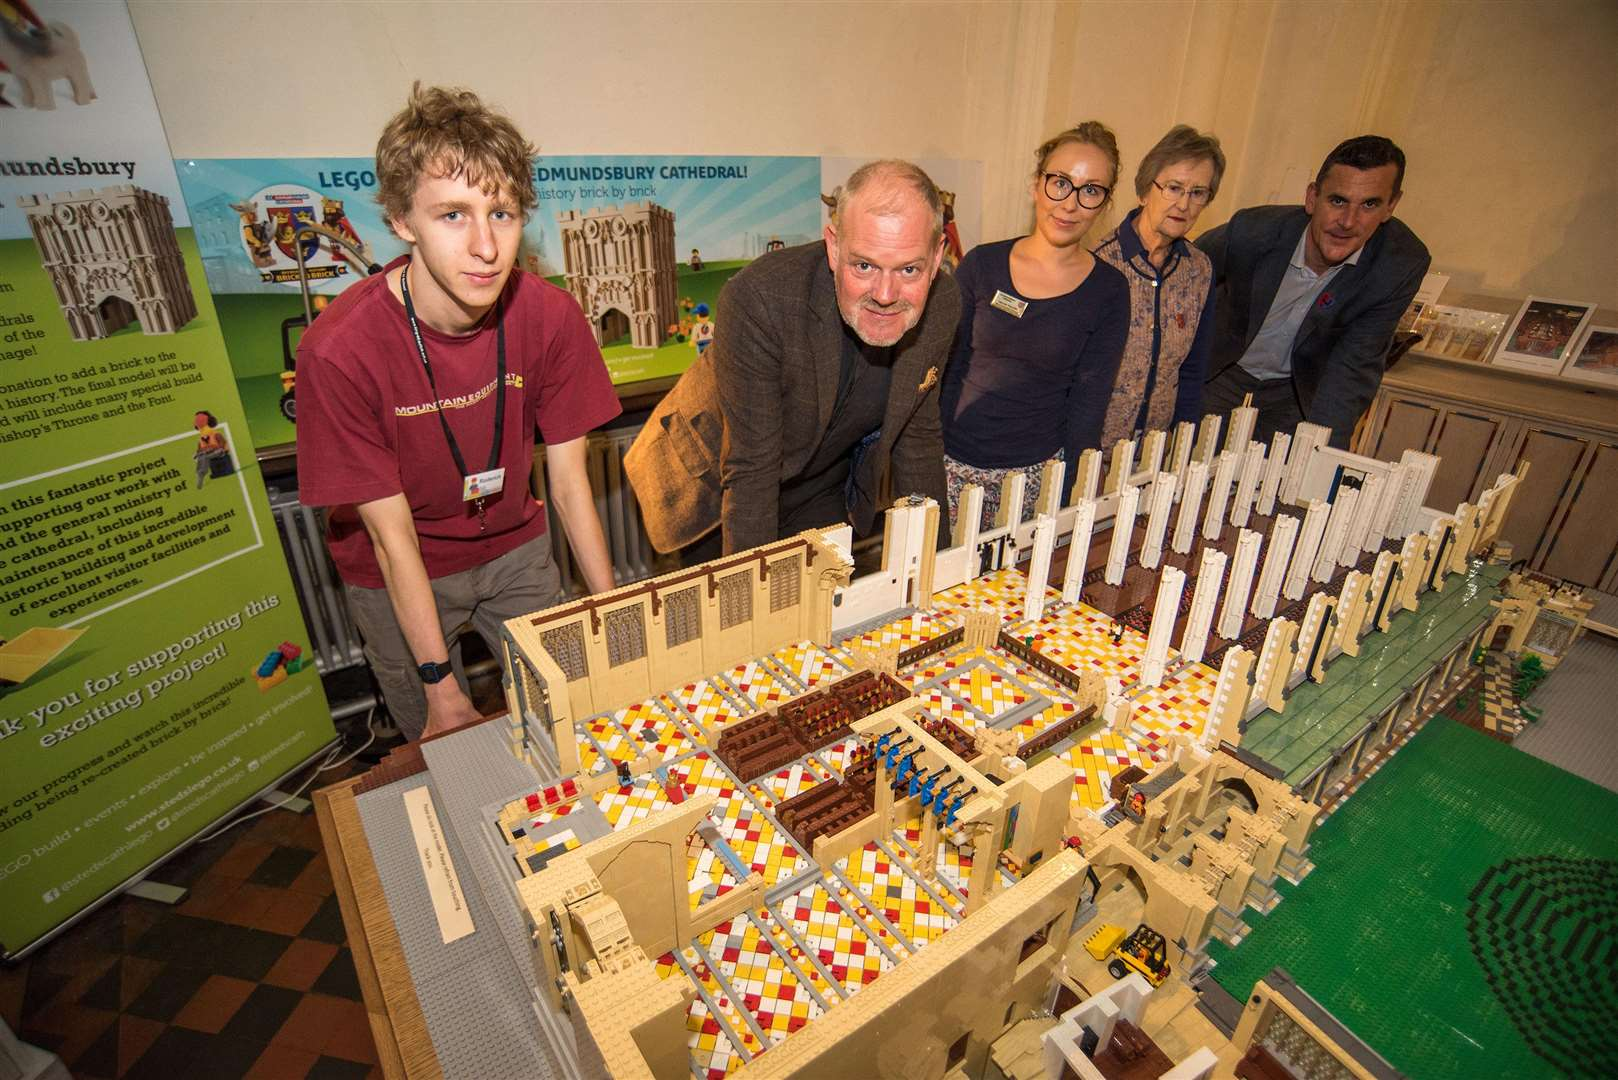 BURY - St Edmundsbury Cathedral LEGO project progress update.Hannah Ratcliffe vists and Comms manager, Matt Cadwell project manager, Joe Hawes Cathedral Dean, Rod Mansel and Margaret Smith volunteer builders Picture Mark Westley. (4002321)